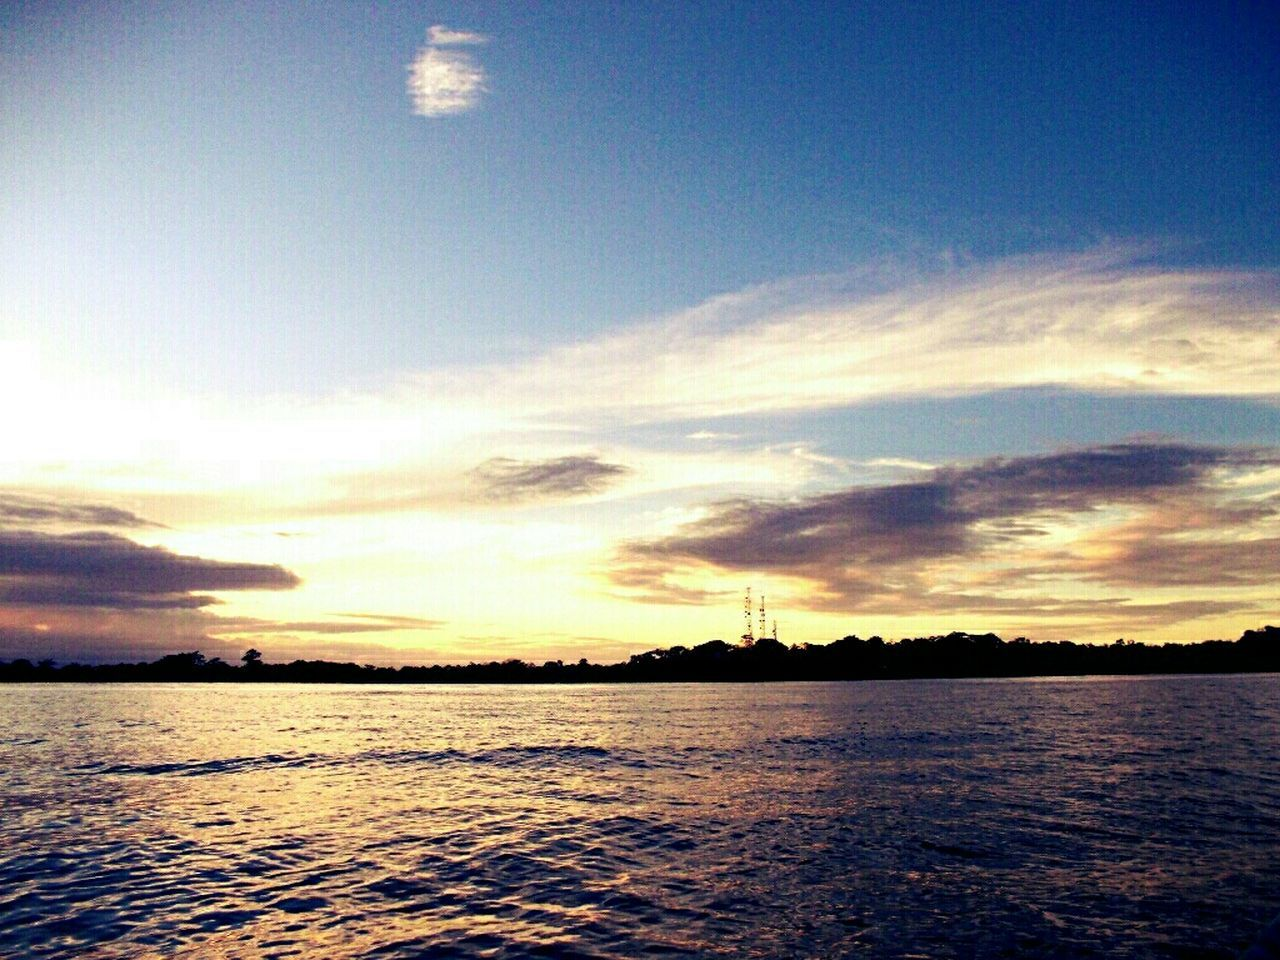 sunset, water, sky, beauty in nature, scenics, no people, tranquility, sea, nature, silhouette, tranquil scene, cloud - sky, outdoors, rippled, waterfront, day